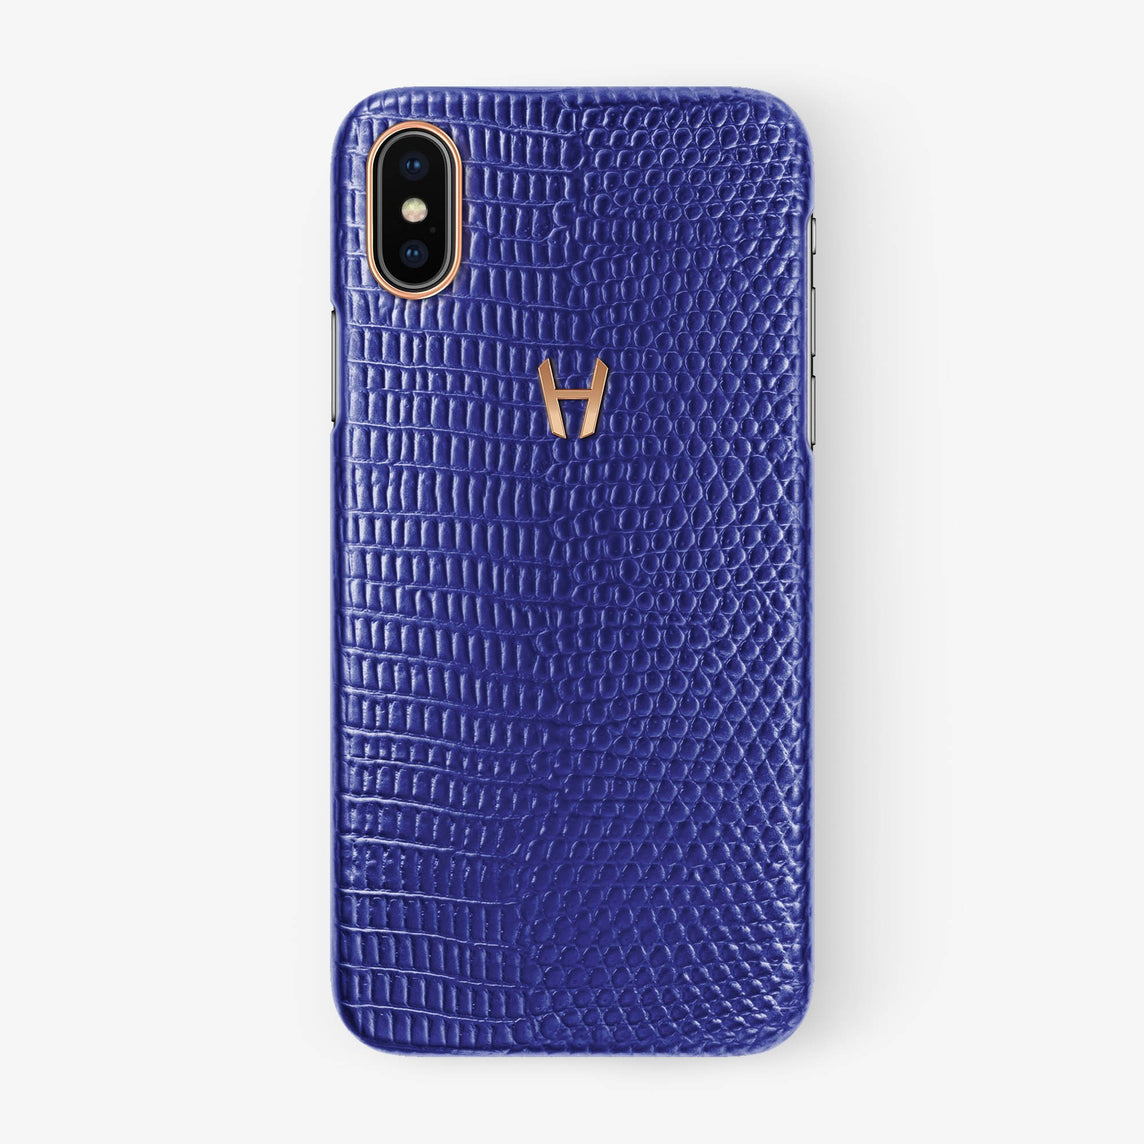 Lizard Case iPhone X/Xs | Blue - Rose Gold withouth-personalization